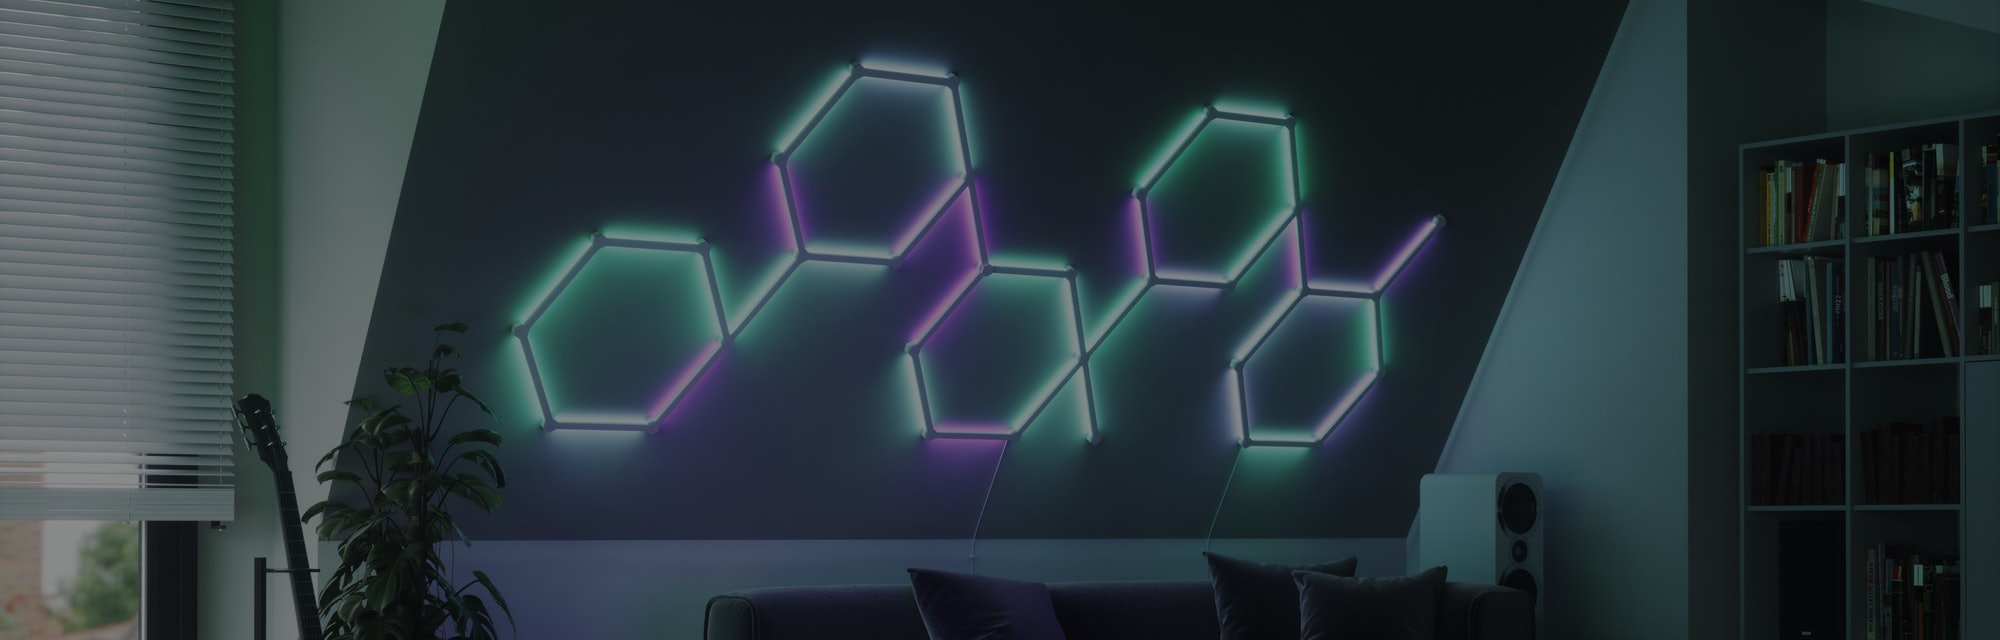 Nanoleaf Lines installed on a wall above a sofa.